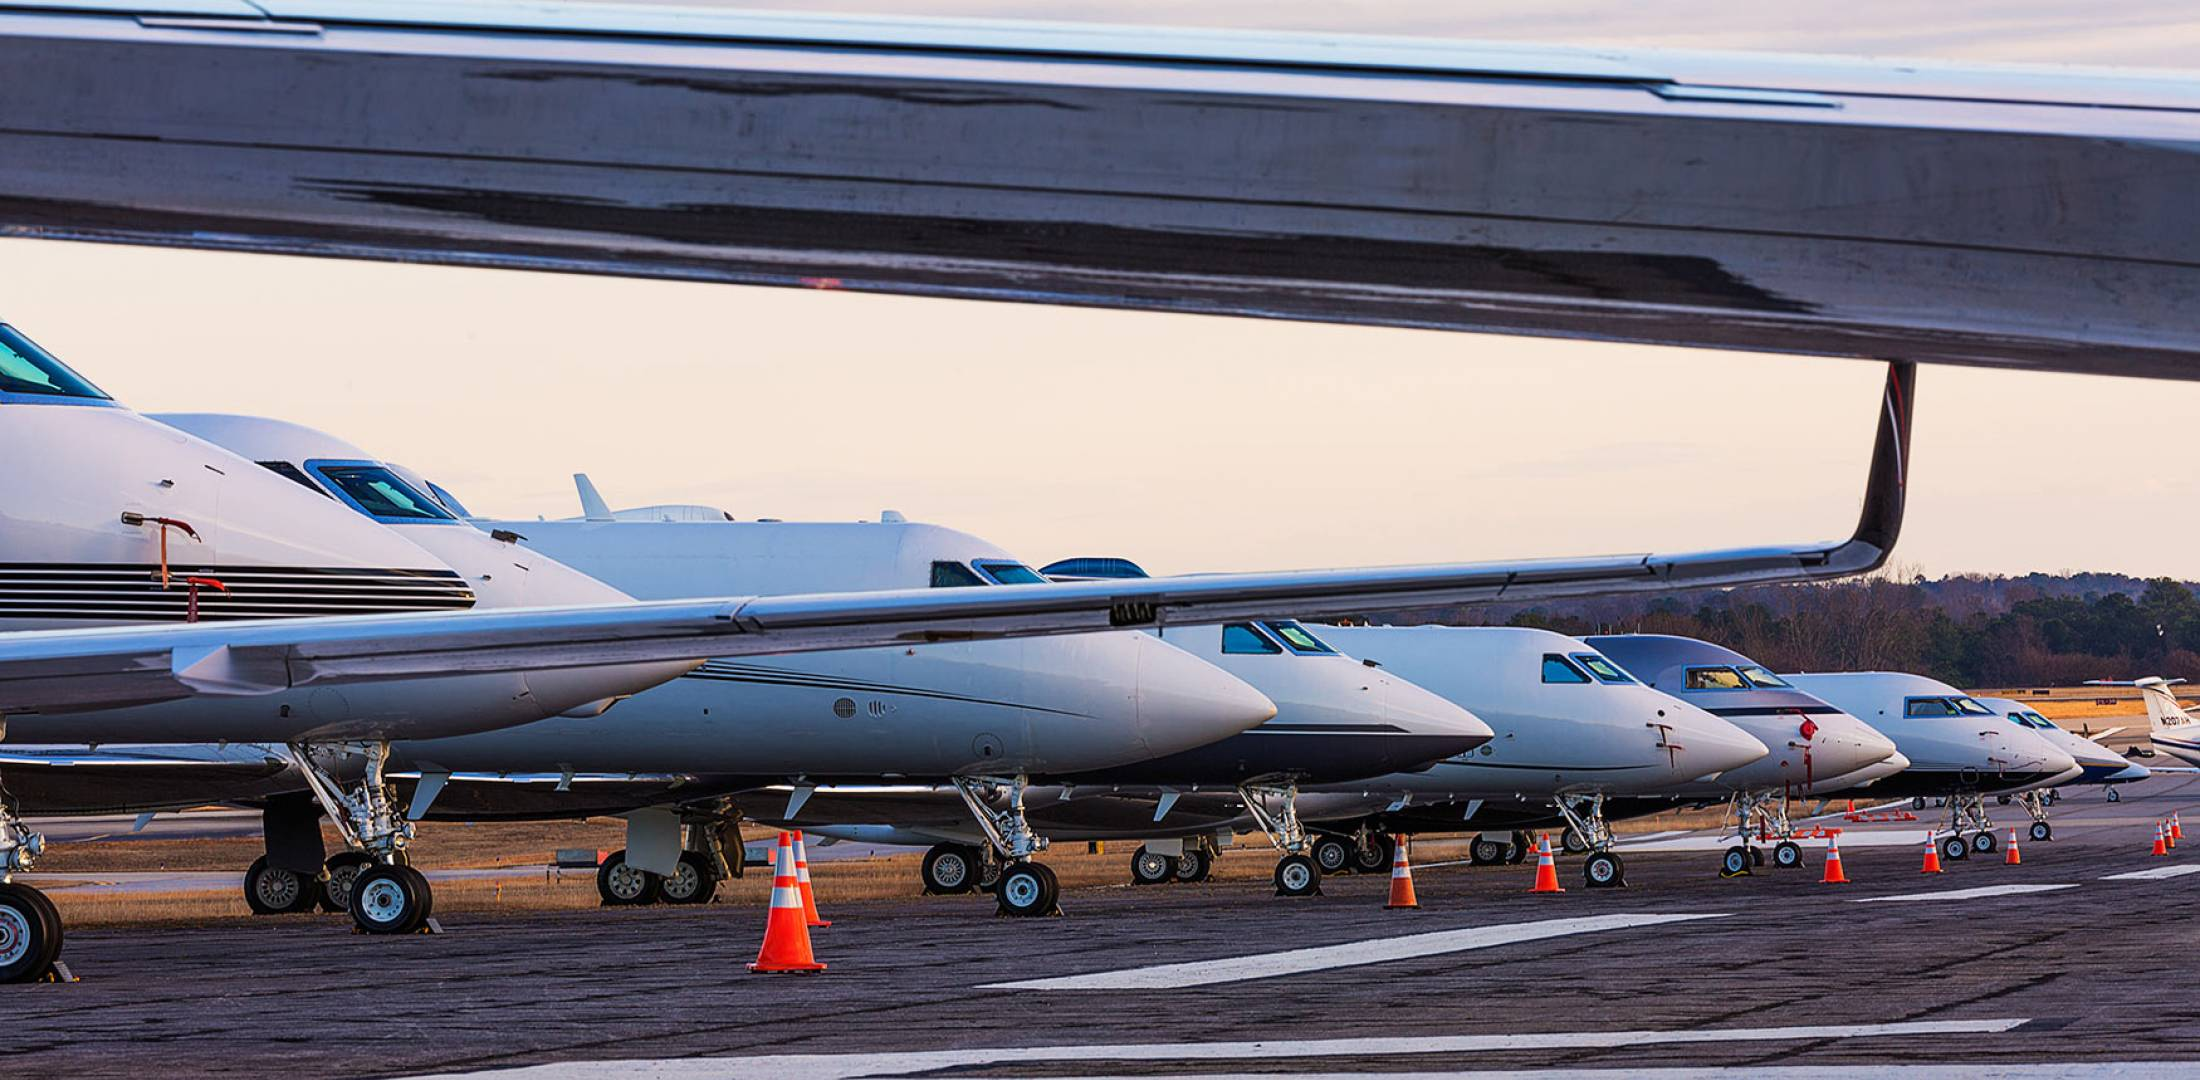 Business jets on the ramp